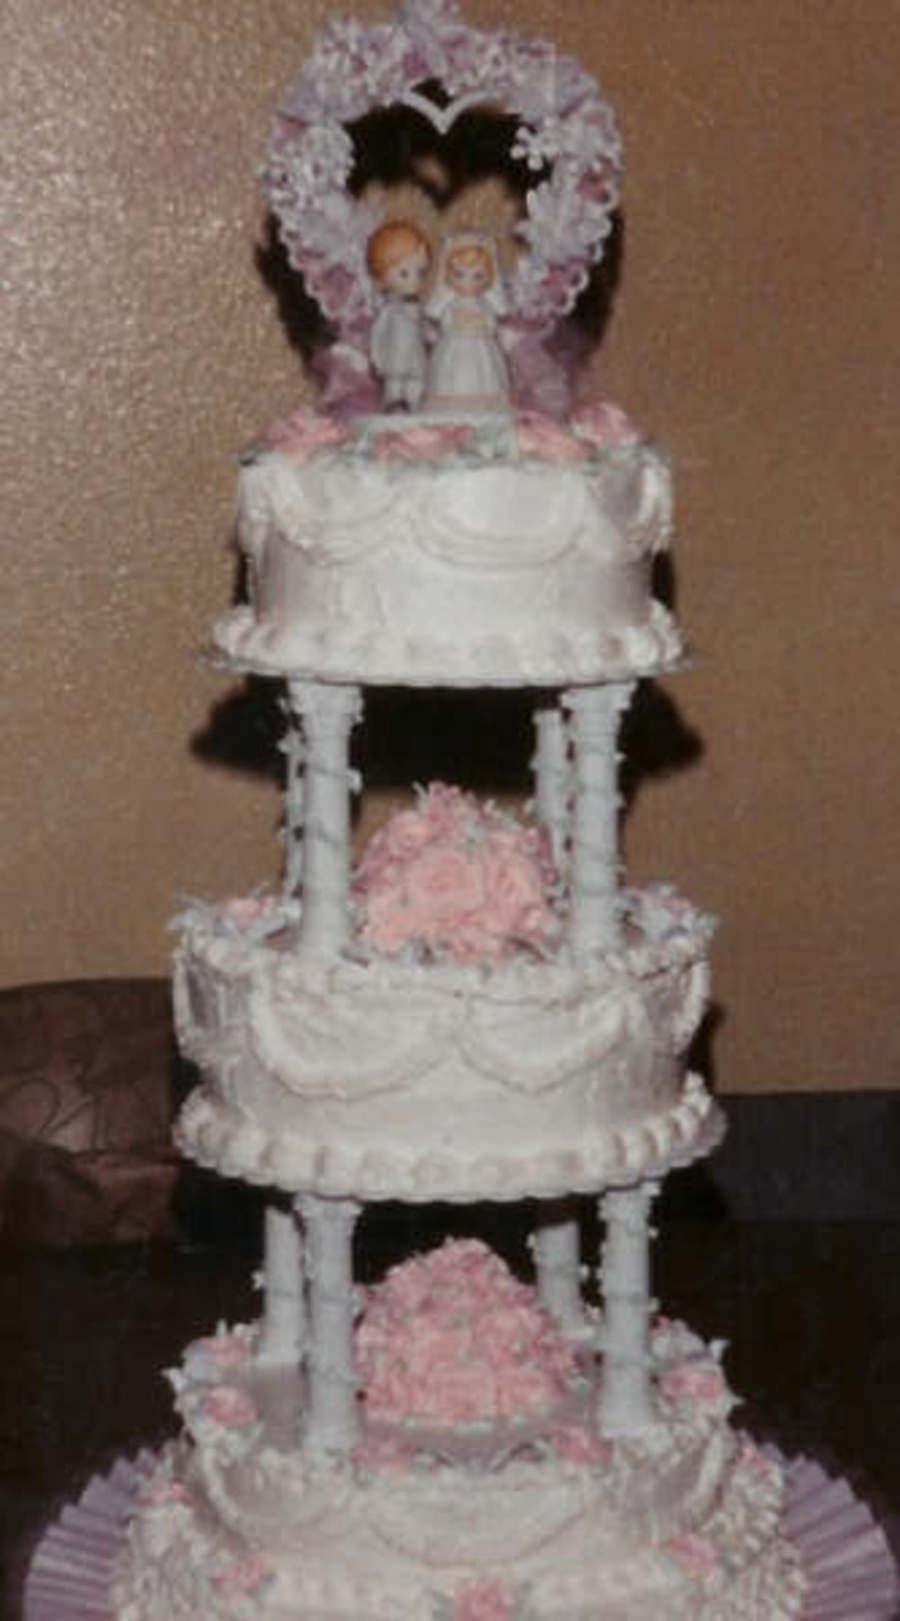 Precious Moments 3 Tier Stacked W Pillars Round White Cake